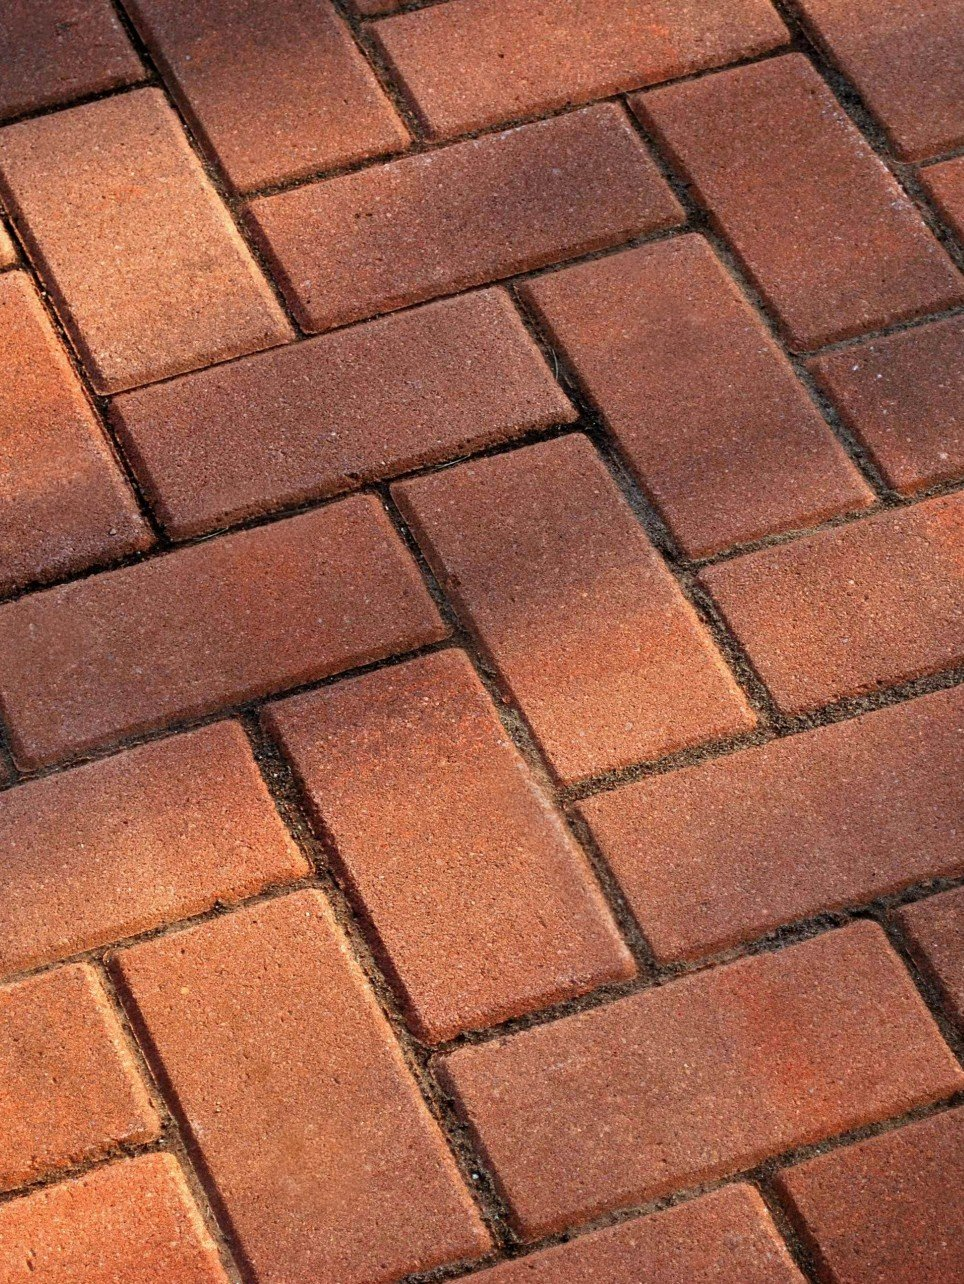 Block Paving Companies Redditch